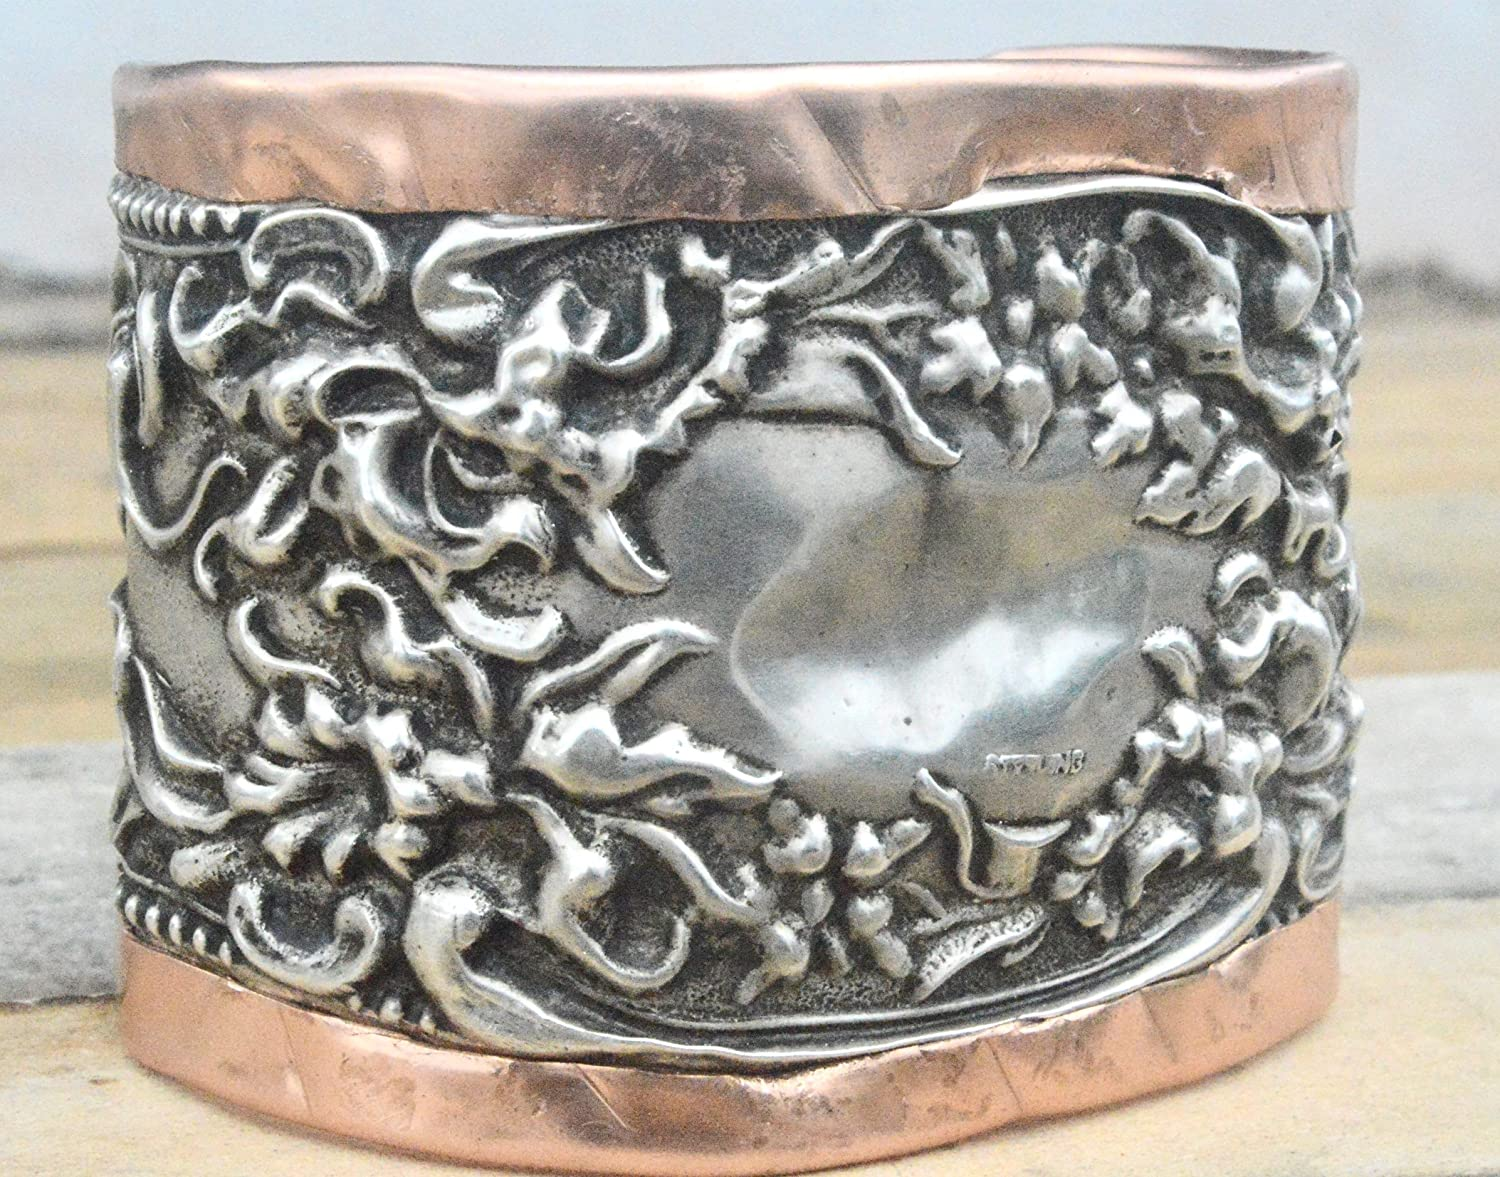 Deluxe Adult Costumes - Men's sterling silver and copper antique French repoussé style art nouveau wide cuff bracelet.